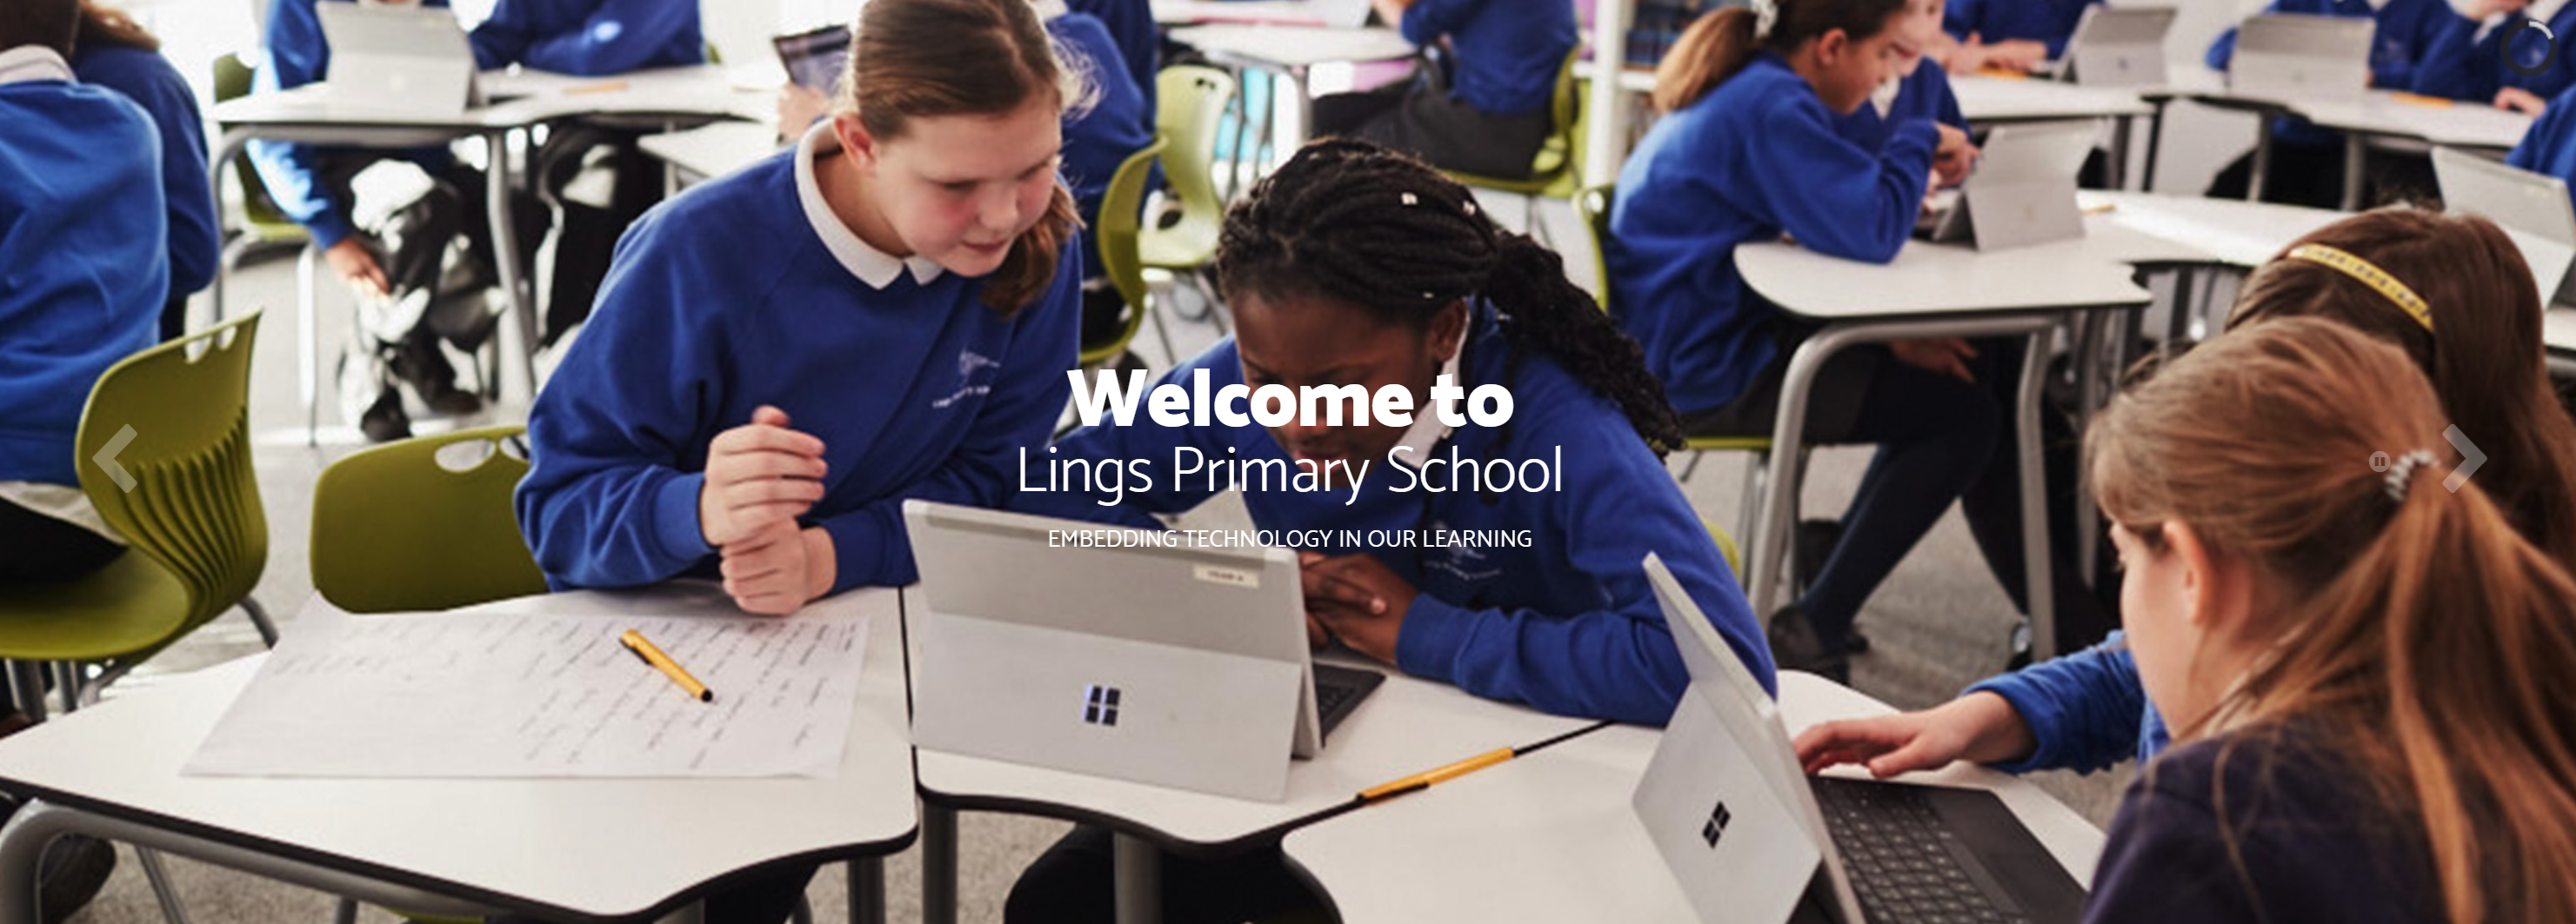 Lings Primary School Blogs